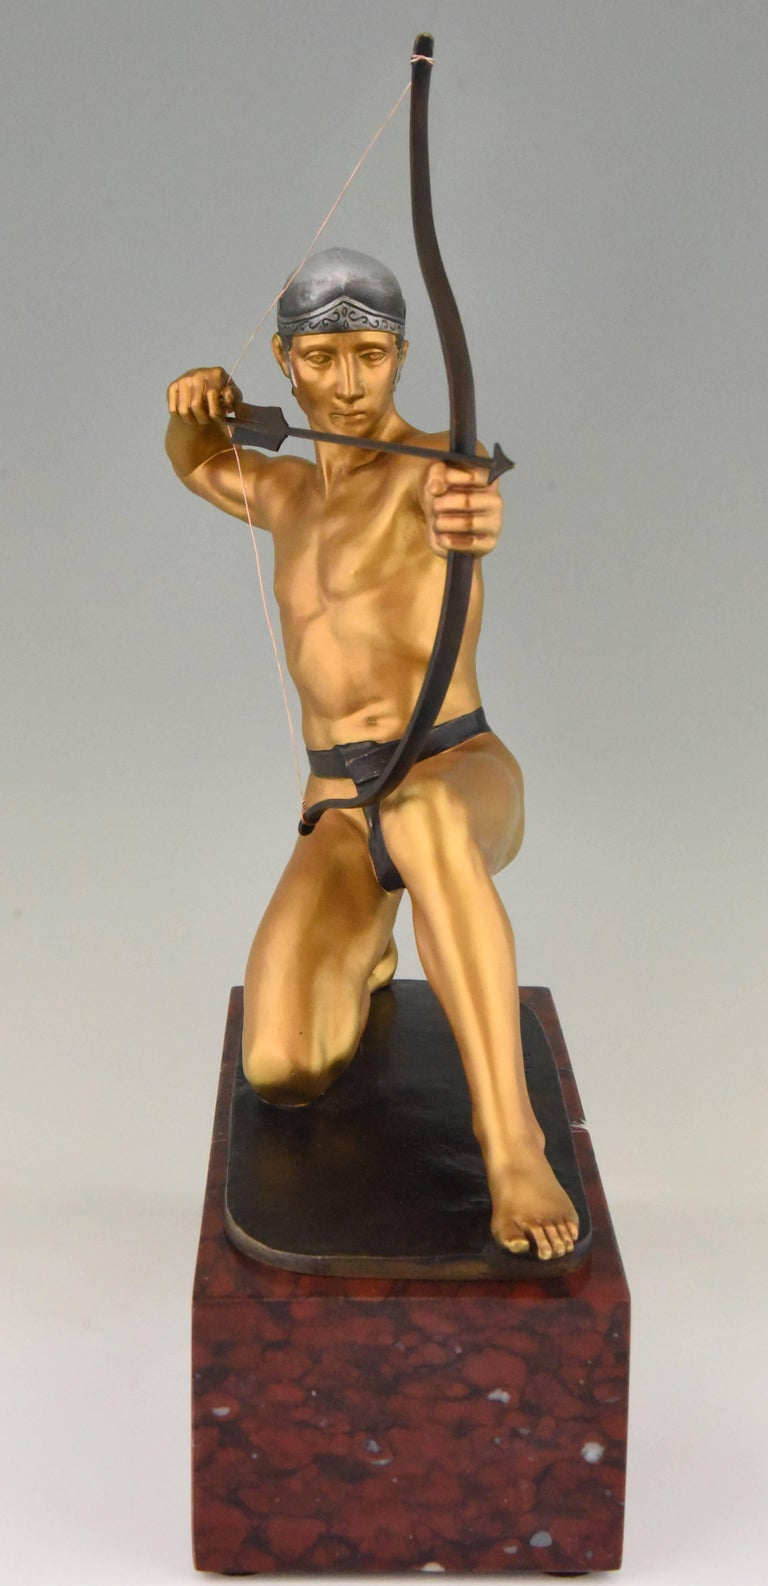 German Antique Bronze Sculpture of a Male Nude Archer by Rudolf Kaesbach  1900 For Sale